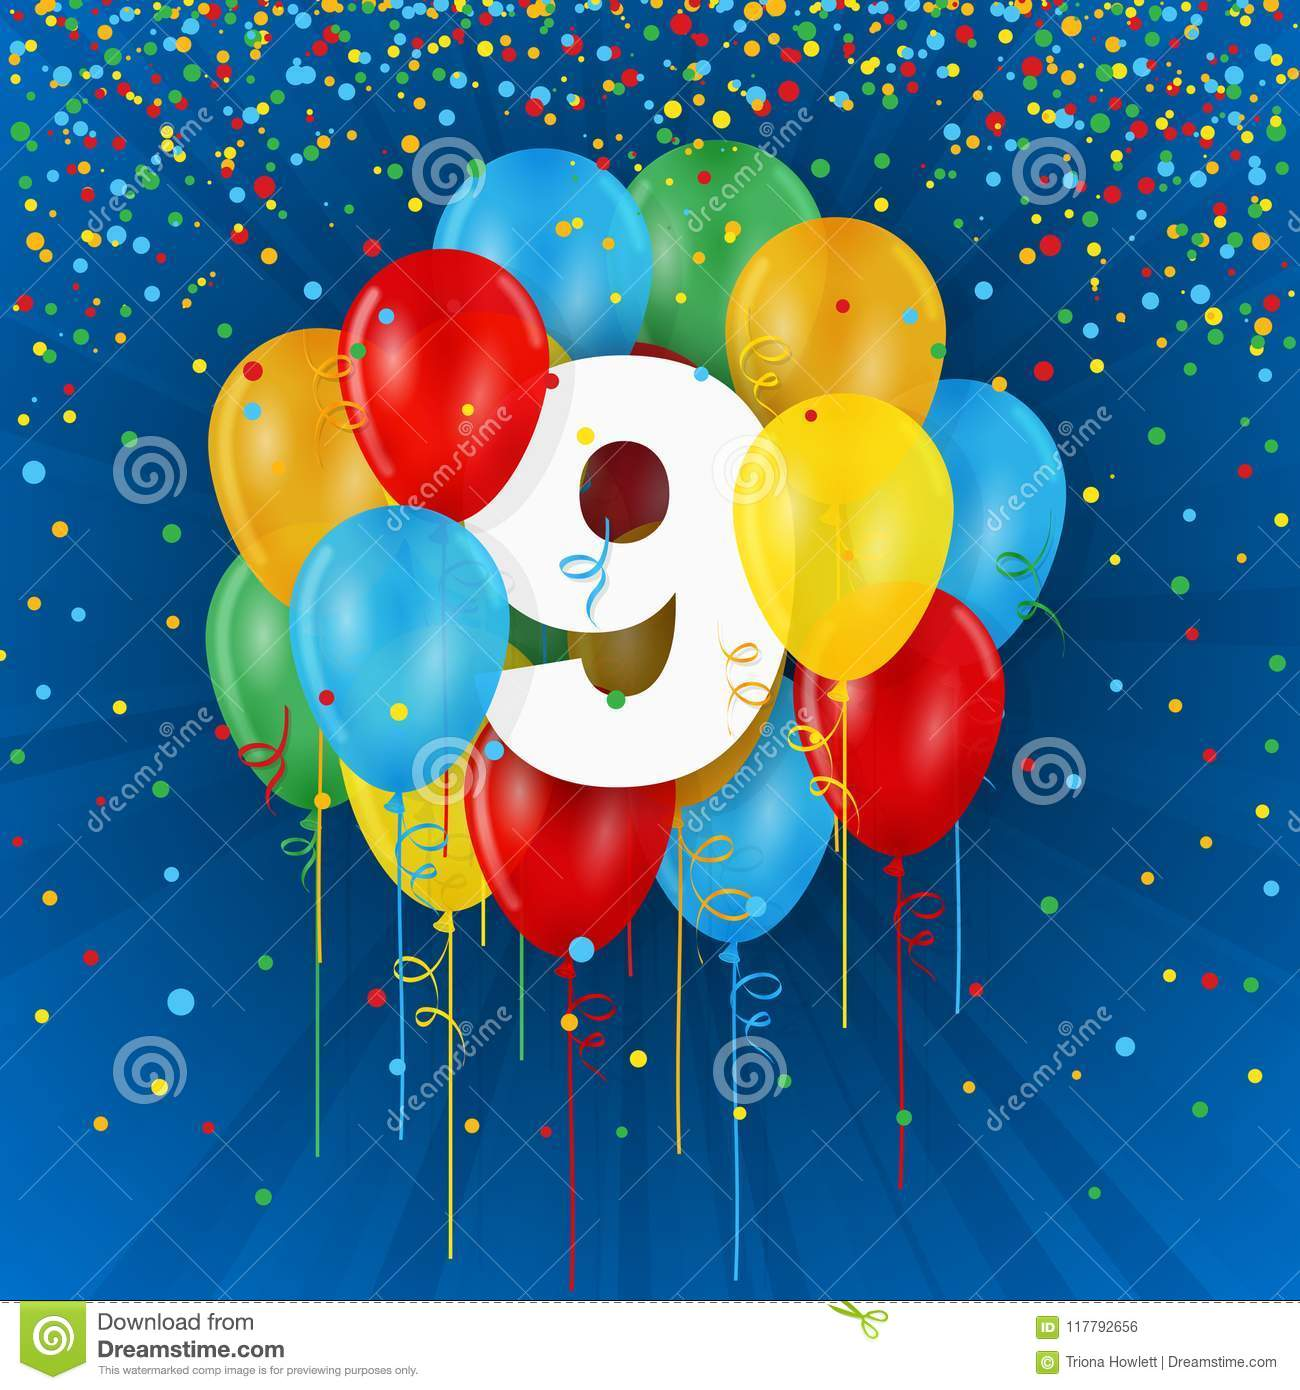 Happy 9th Birthday Anniversary Card With Balloons Stock Illustration Illustration Of Note Vector 117792656